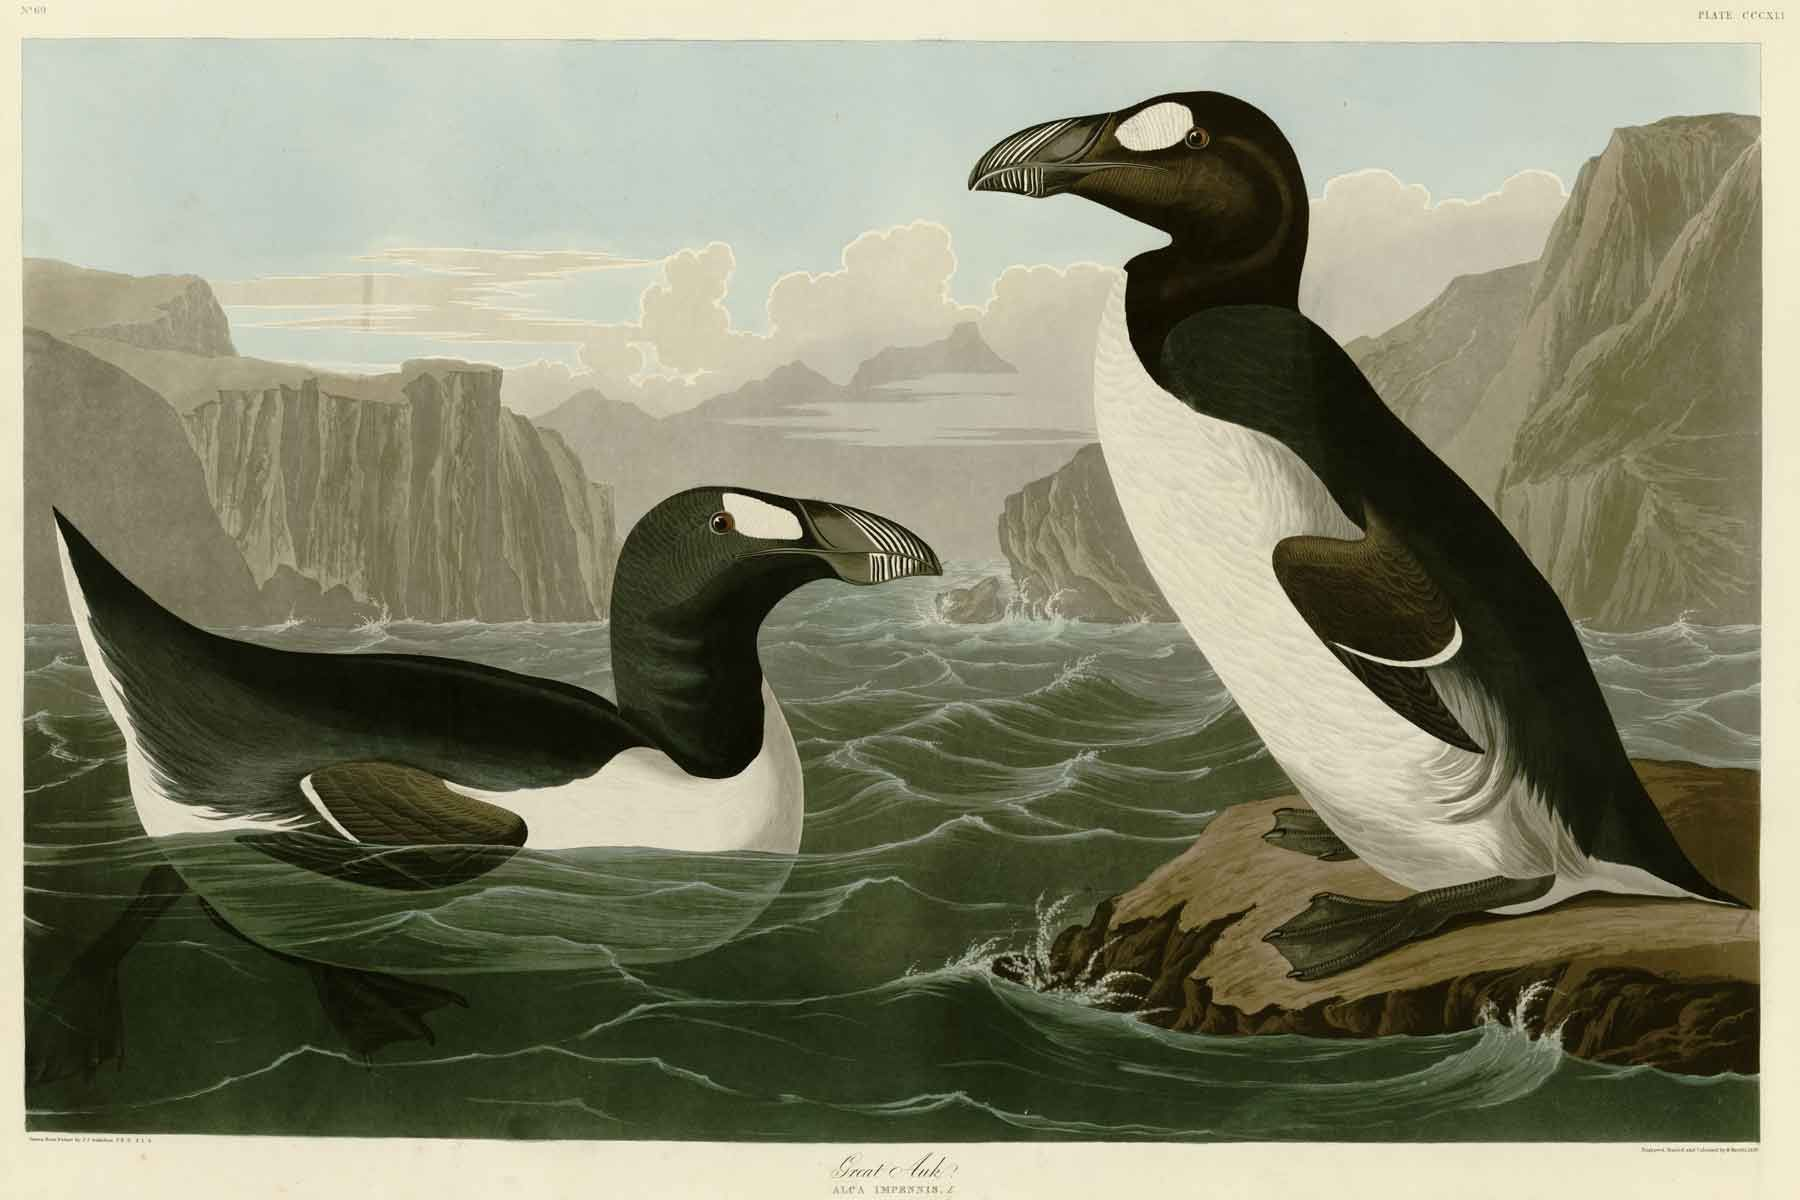 Illustration of a. pair of Great Auks, one on a rock and the other floating in the water